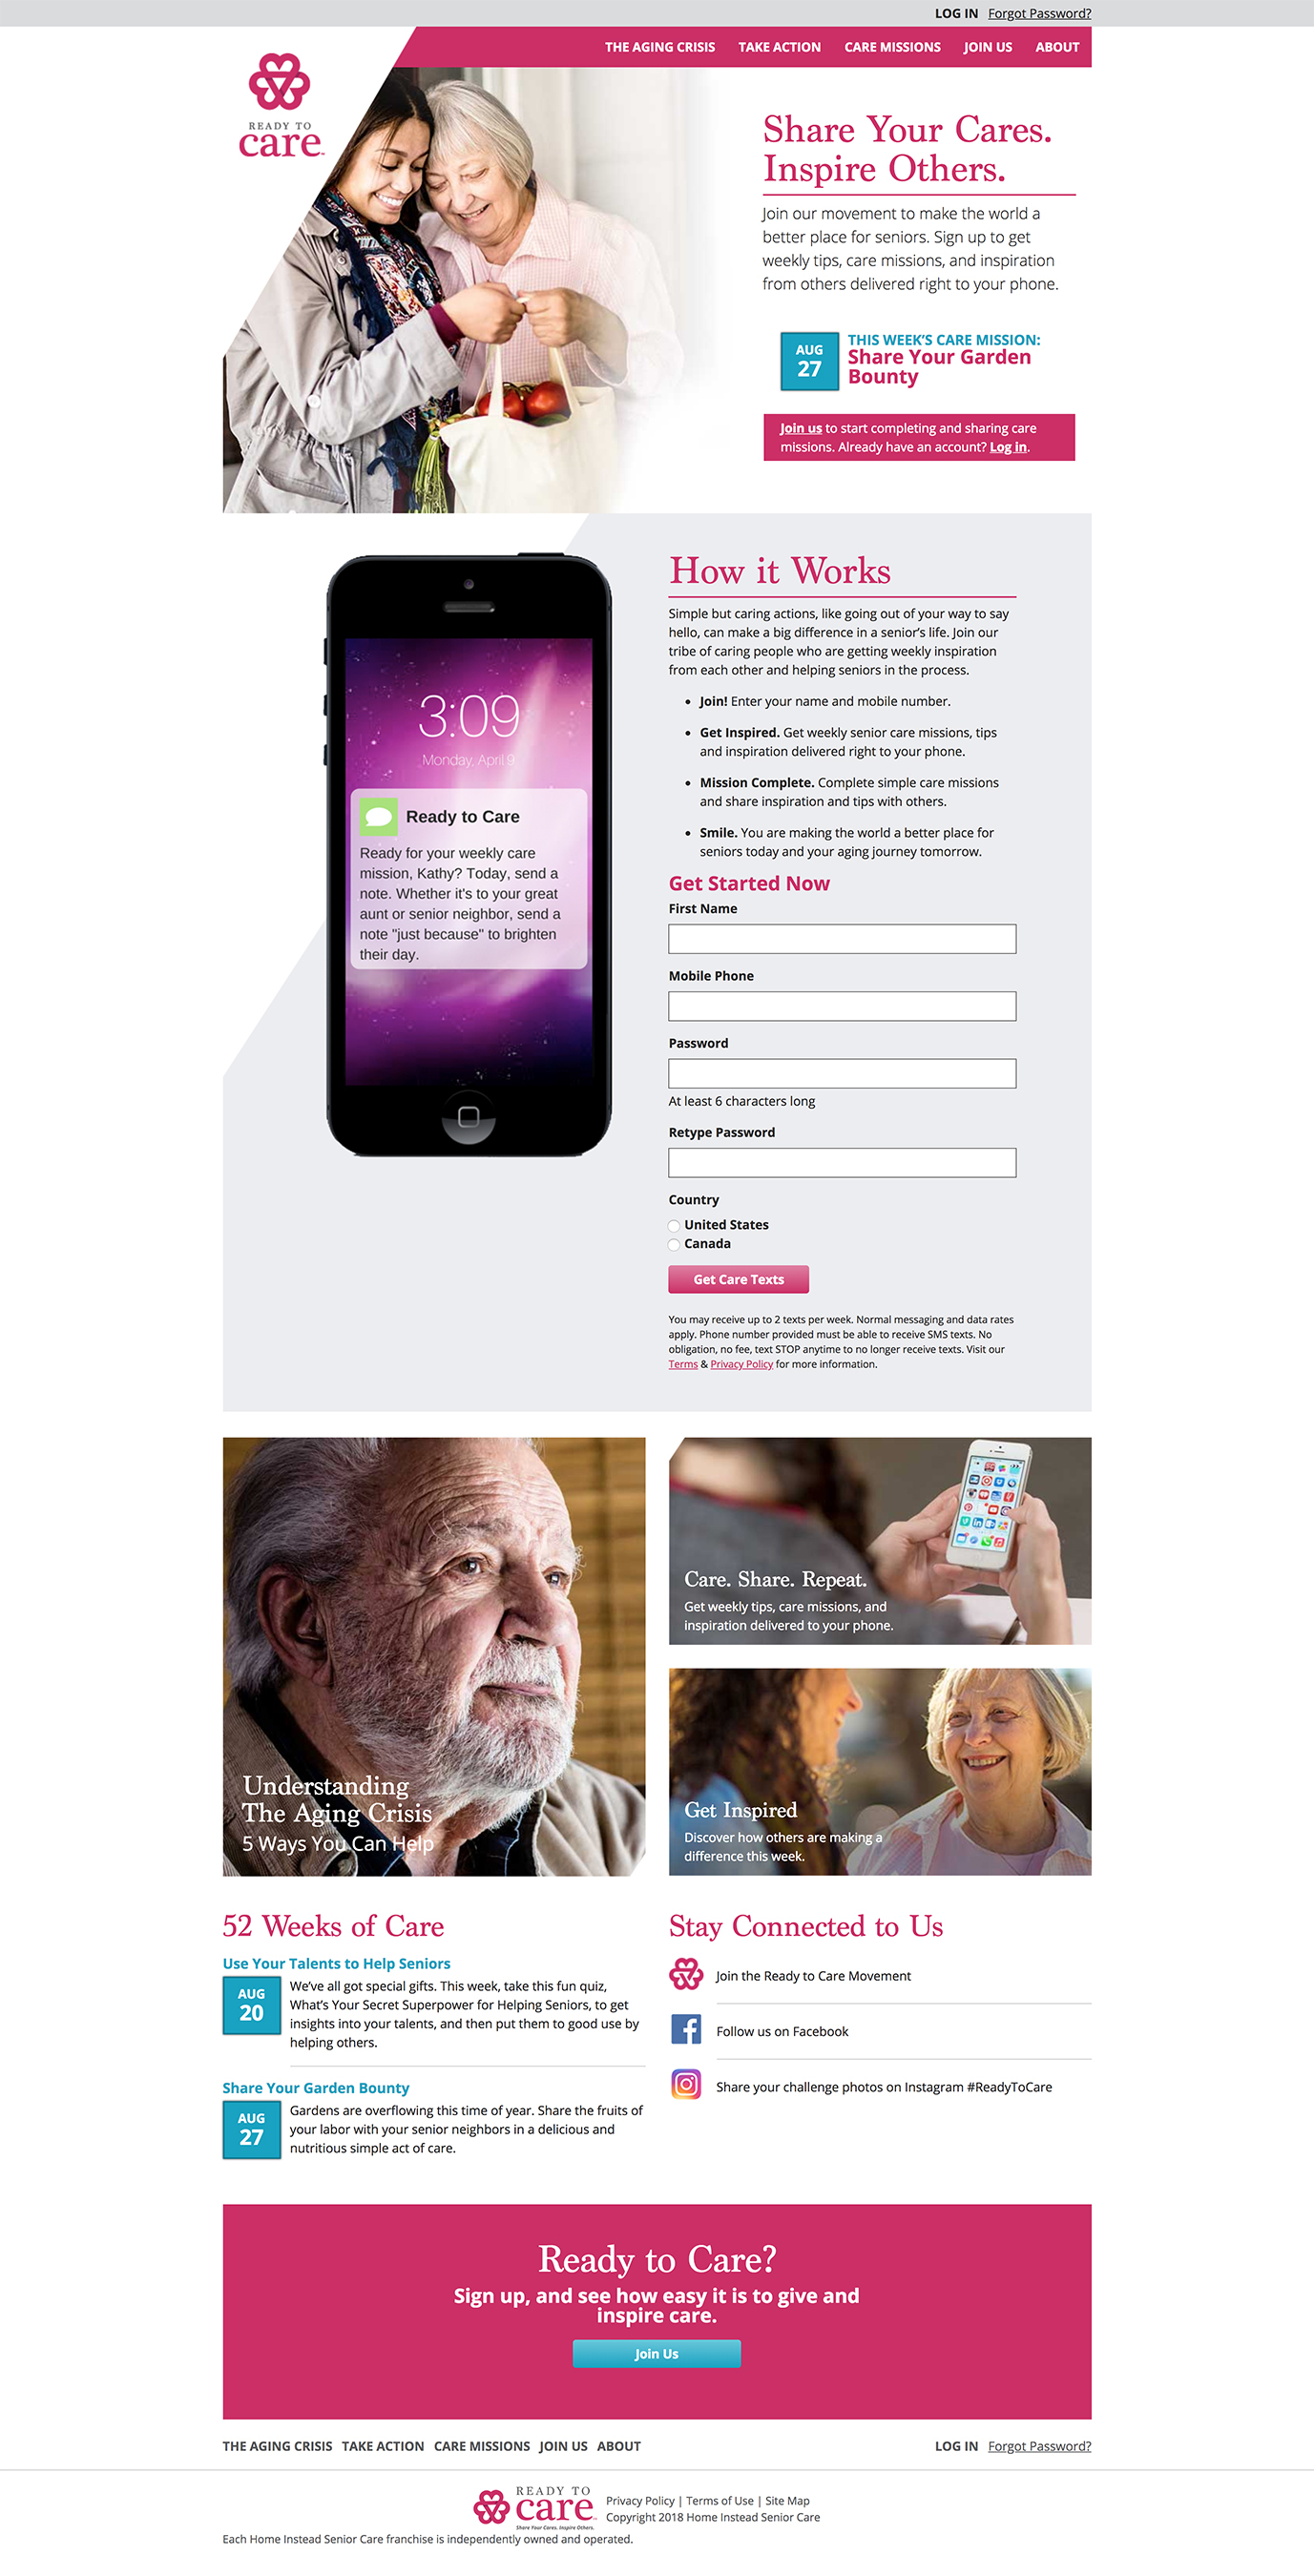 Ready to Care encourages users to take action via weekly text messages.